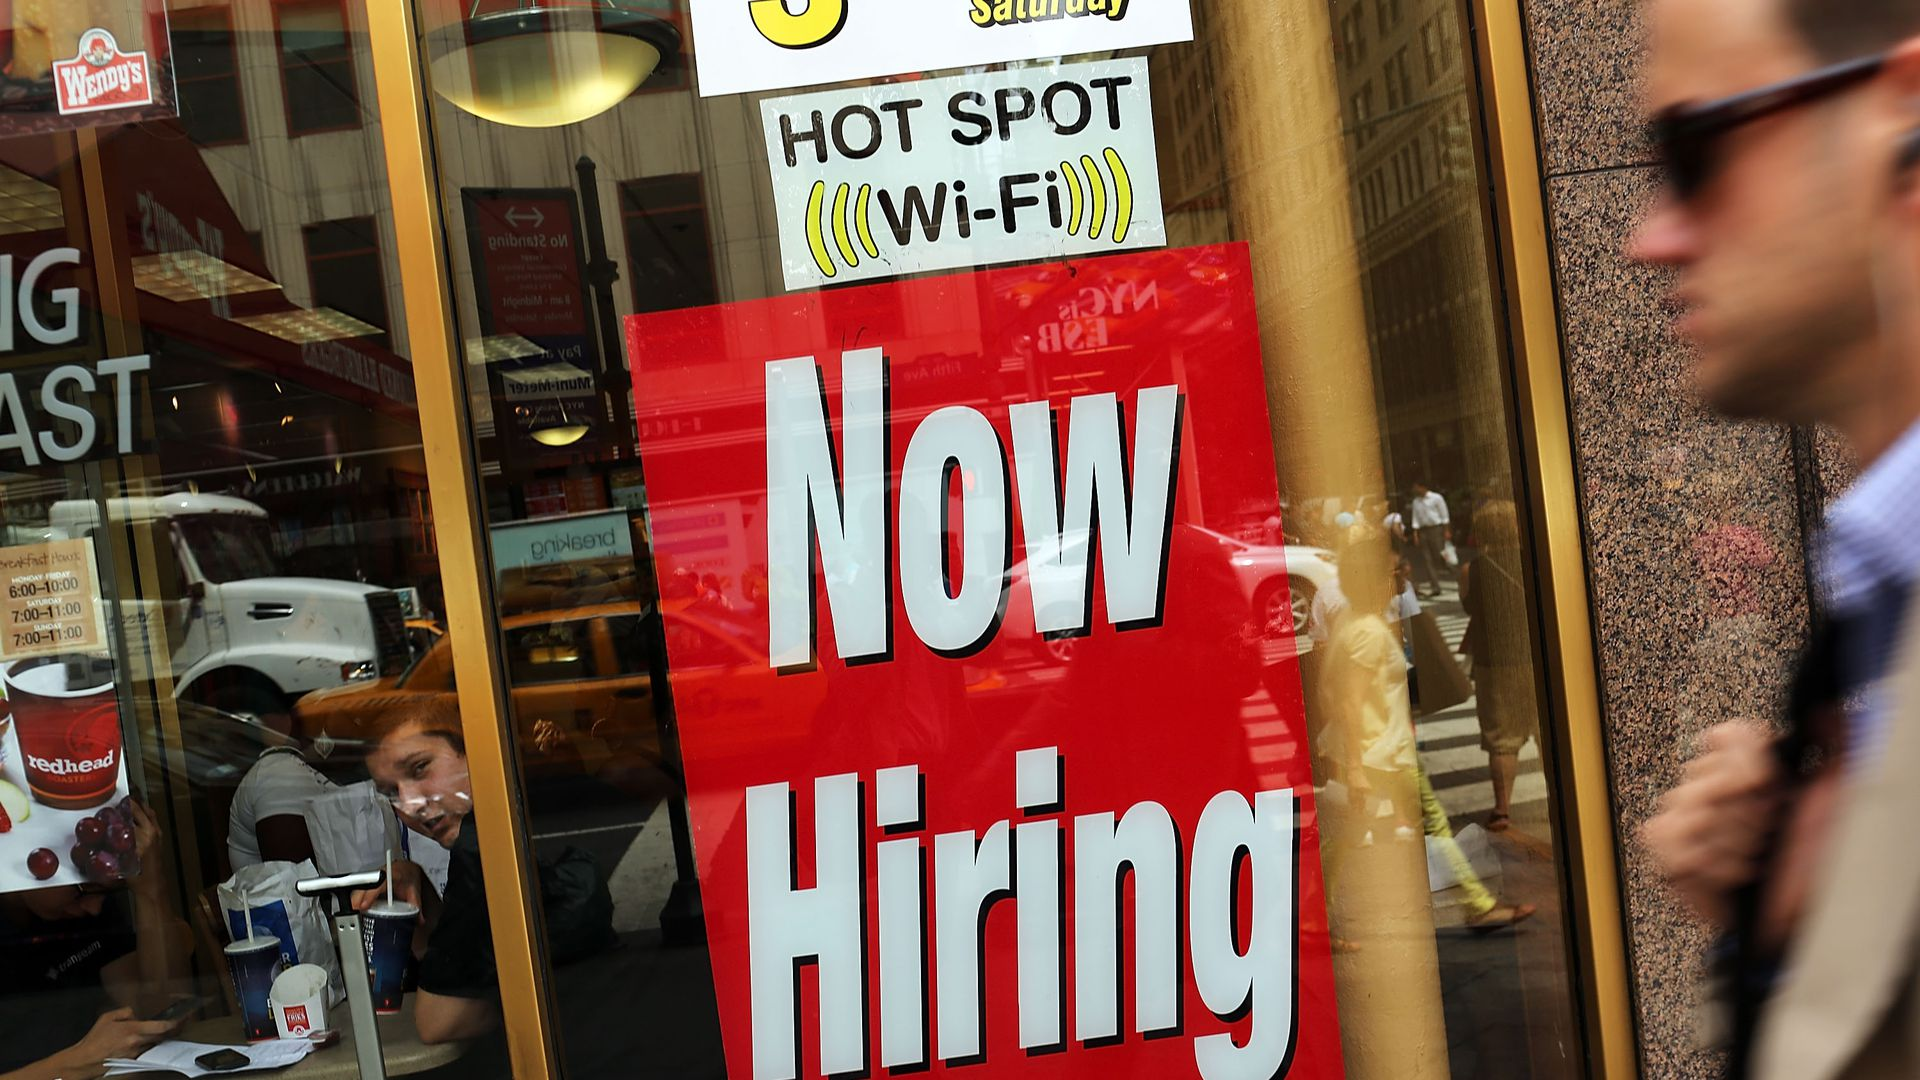 Photo of Now Hiring sign in store window